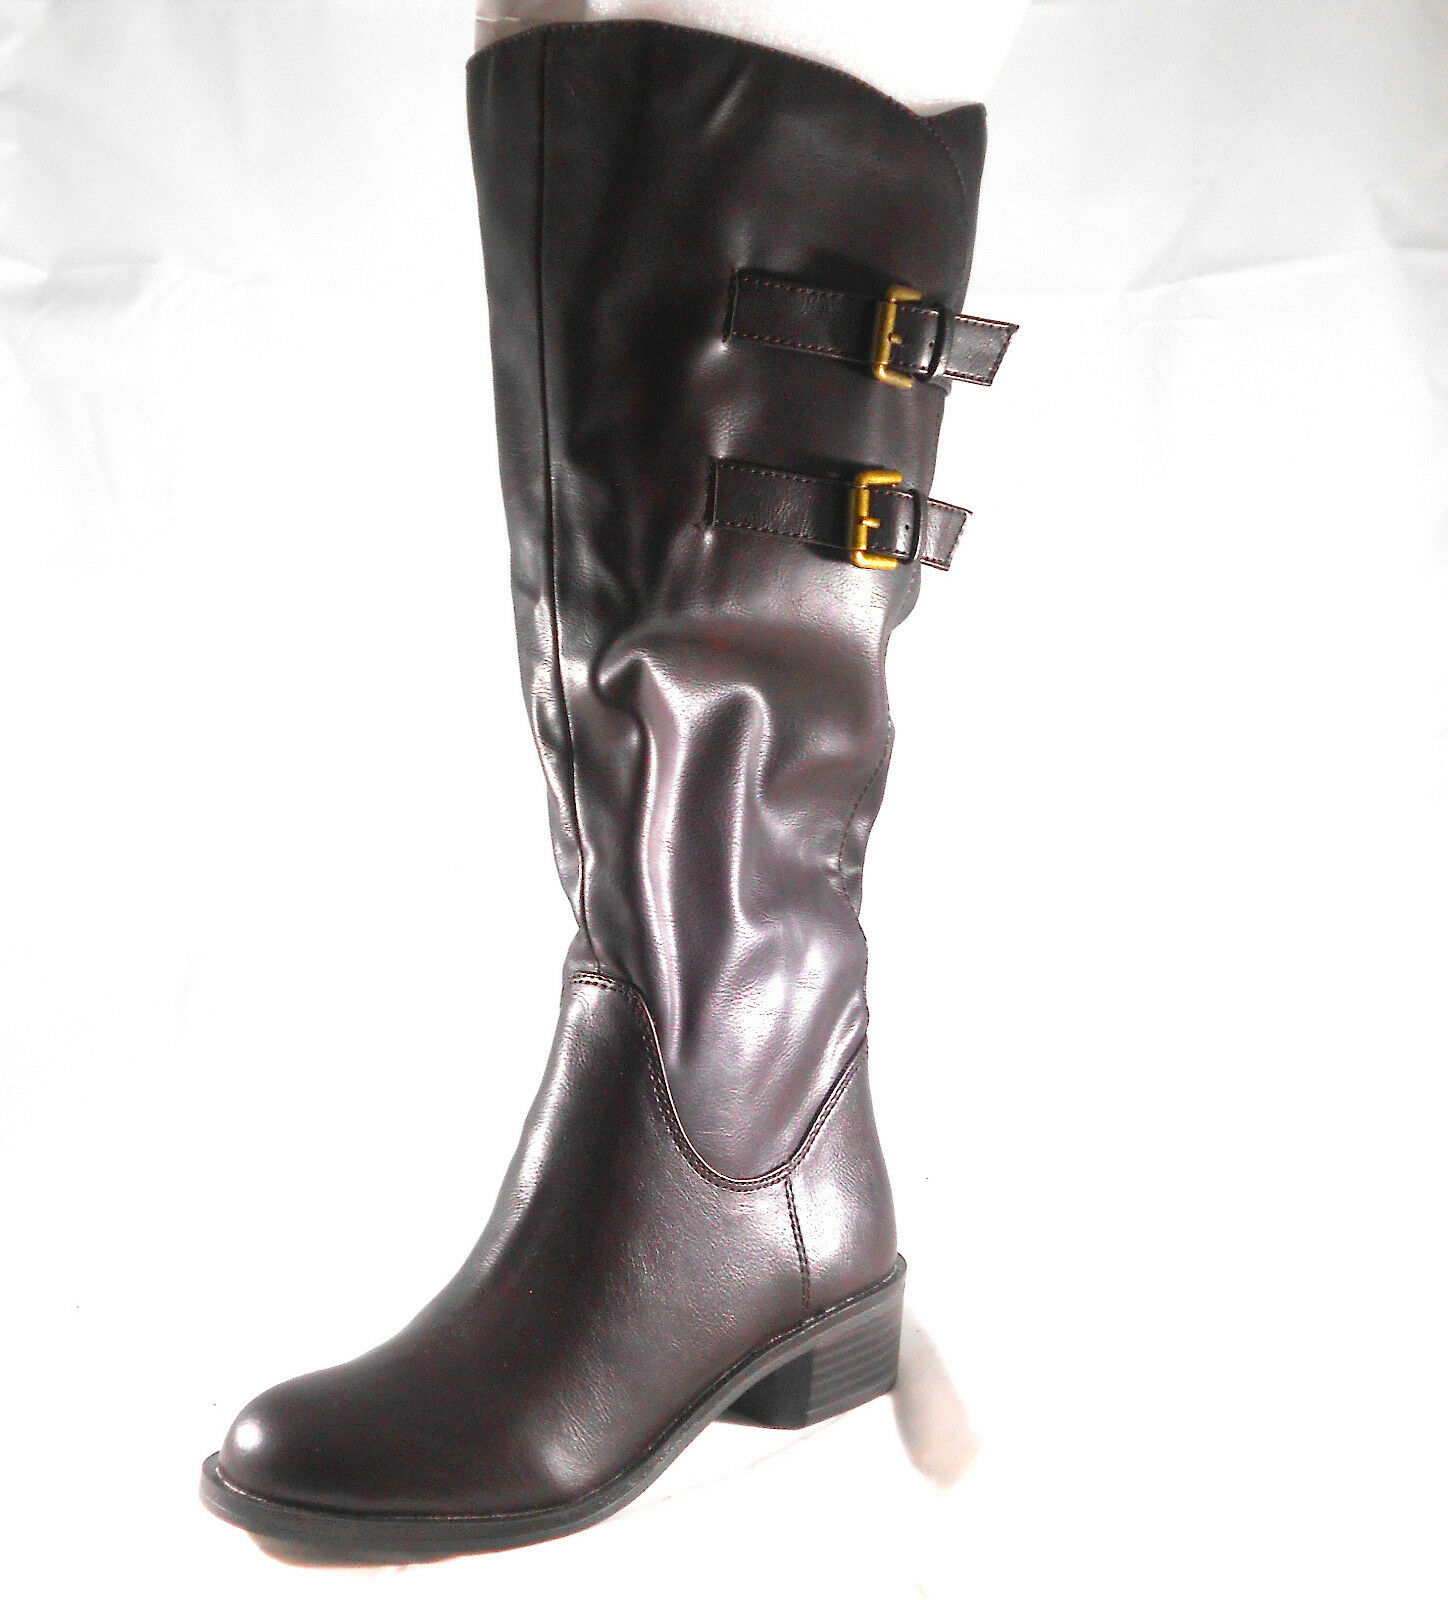 STYLE&CO (MASEN CHOCOLATE BOOT) WOMEN'S SIZE 5.5 WIDE CALF BRAND NEW